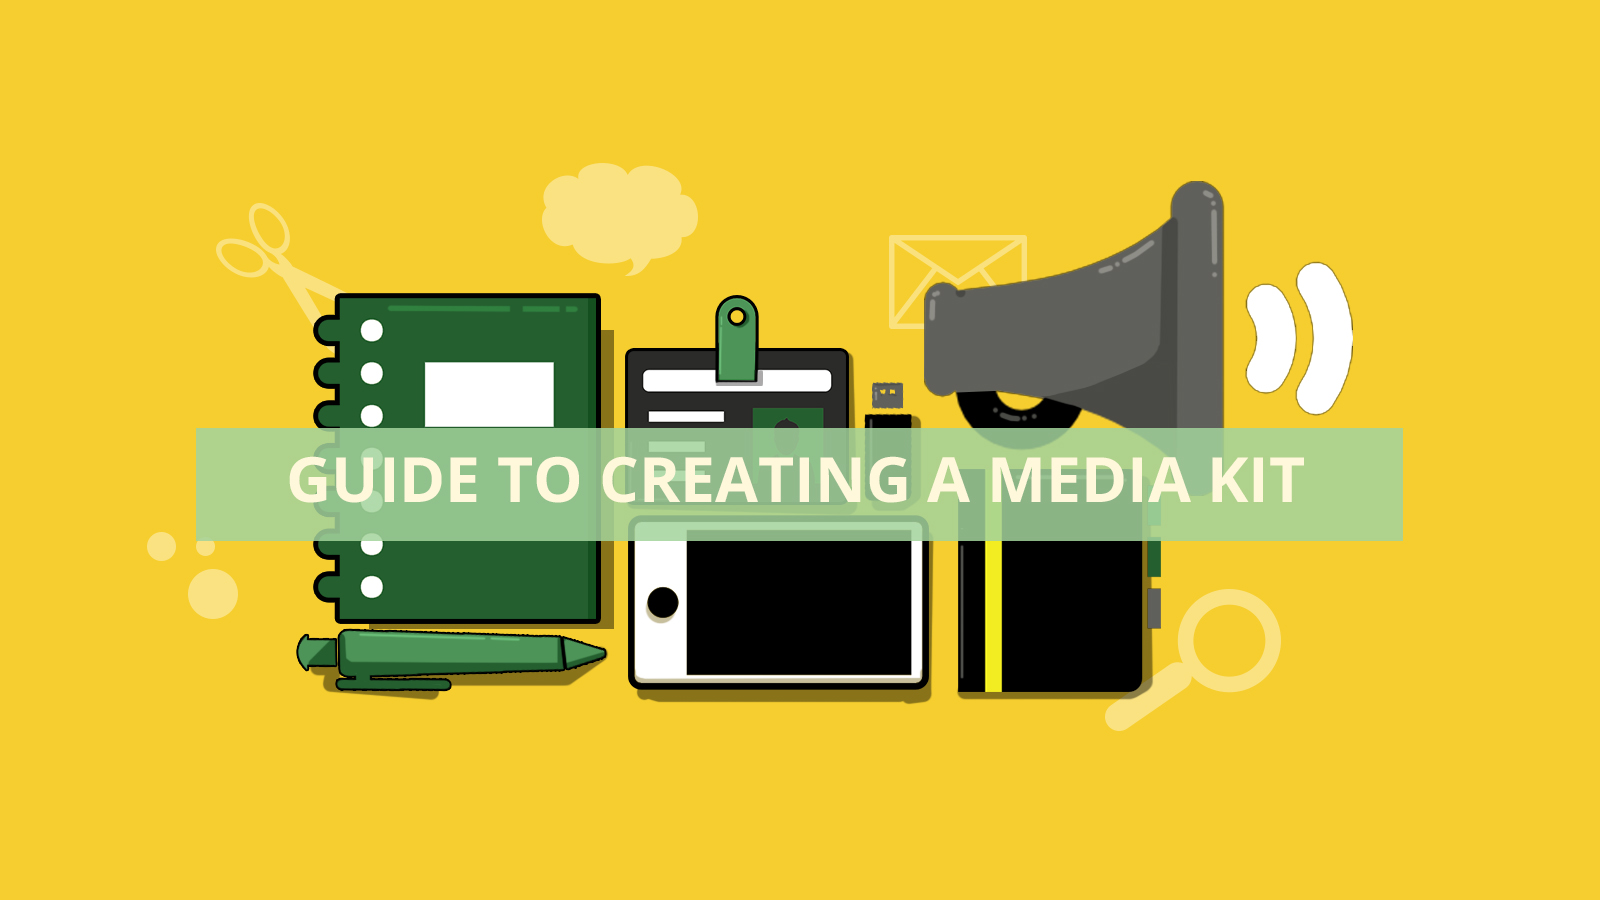 Guide to creating a media kit